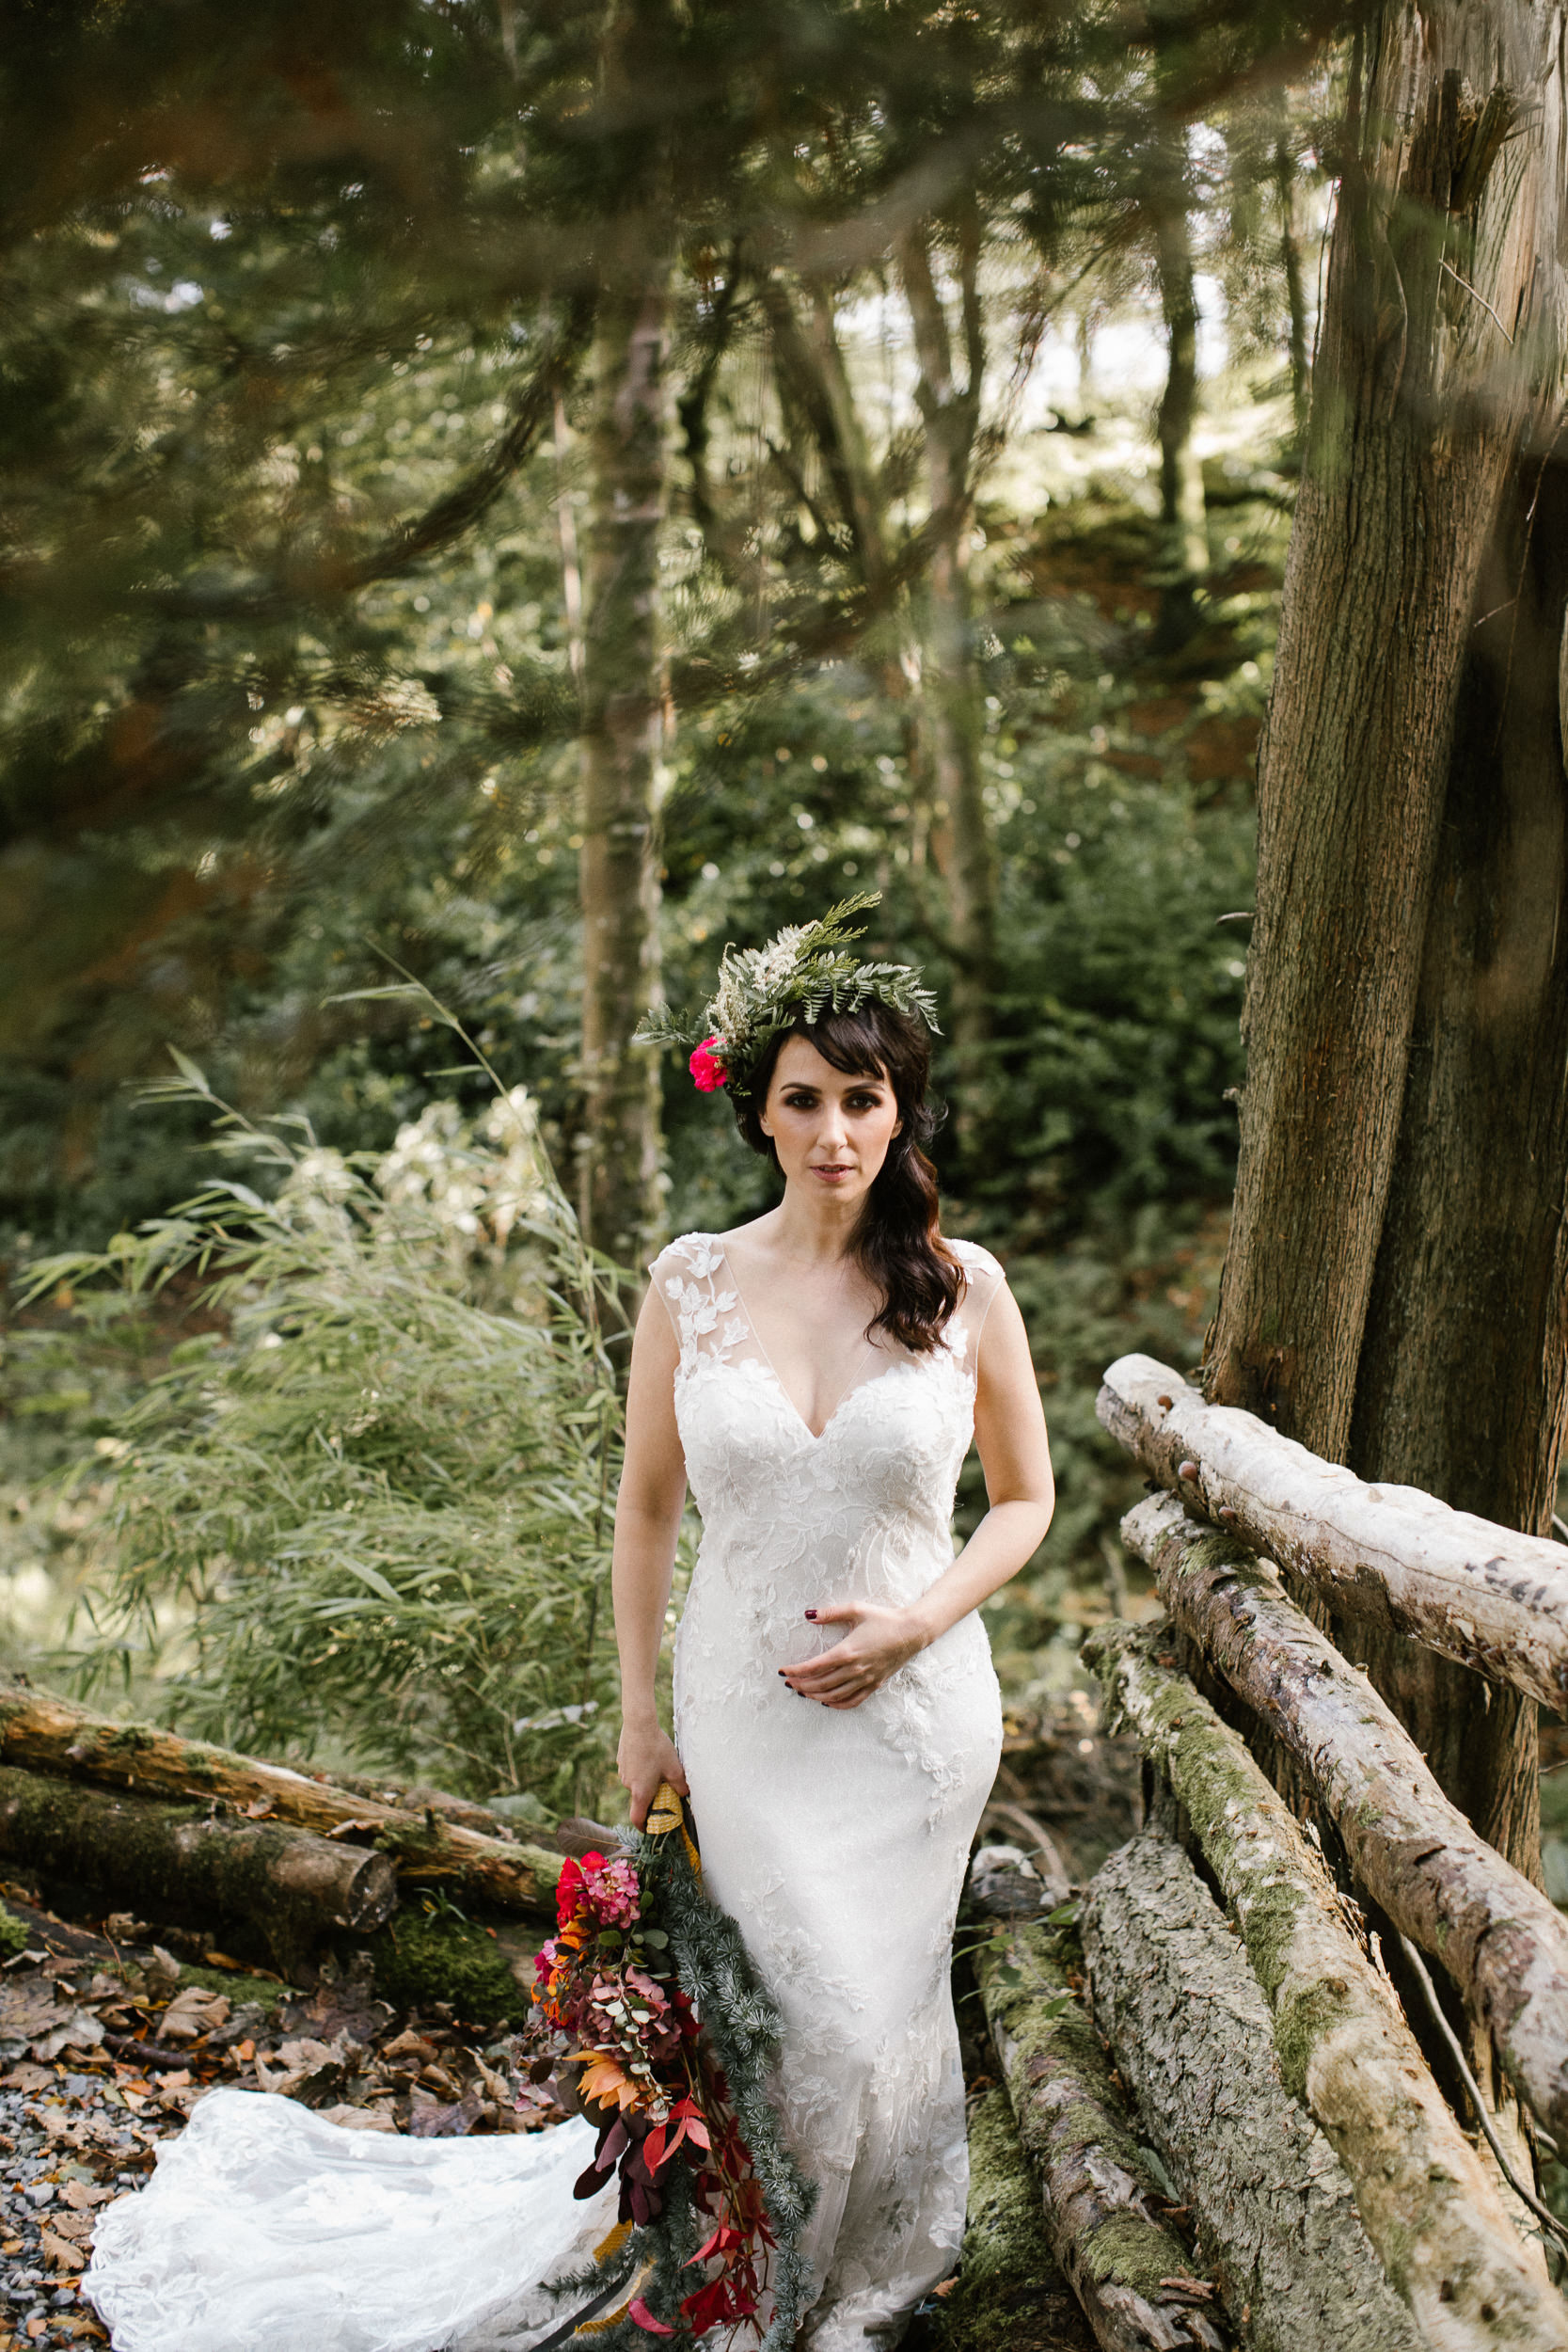 clairebyrnephotography-styled-shoot-huntingbrook-gardens-inspiration-weddings-woods-forest-79.jpg